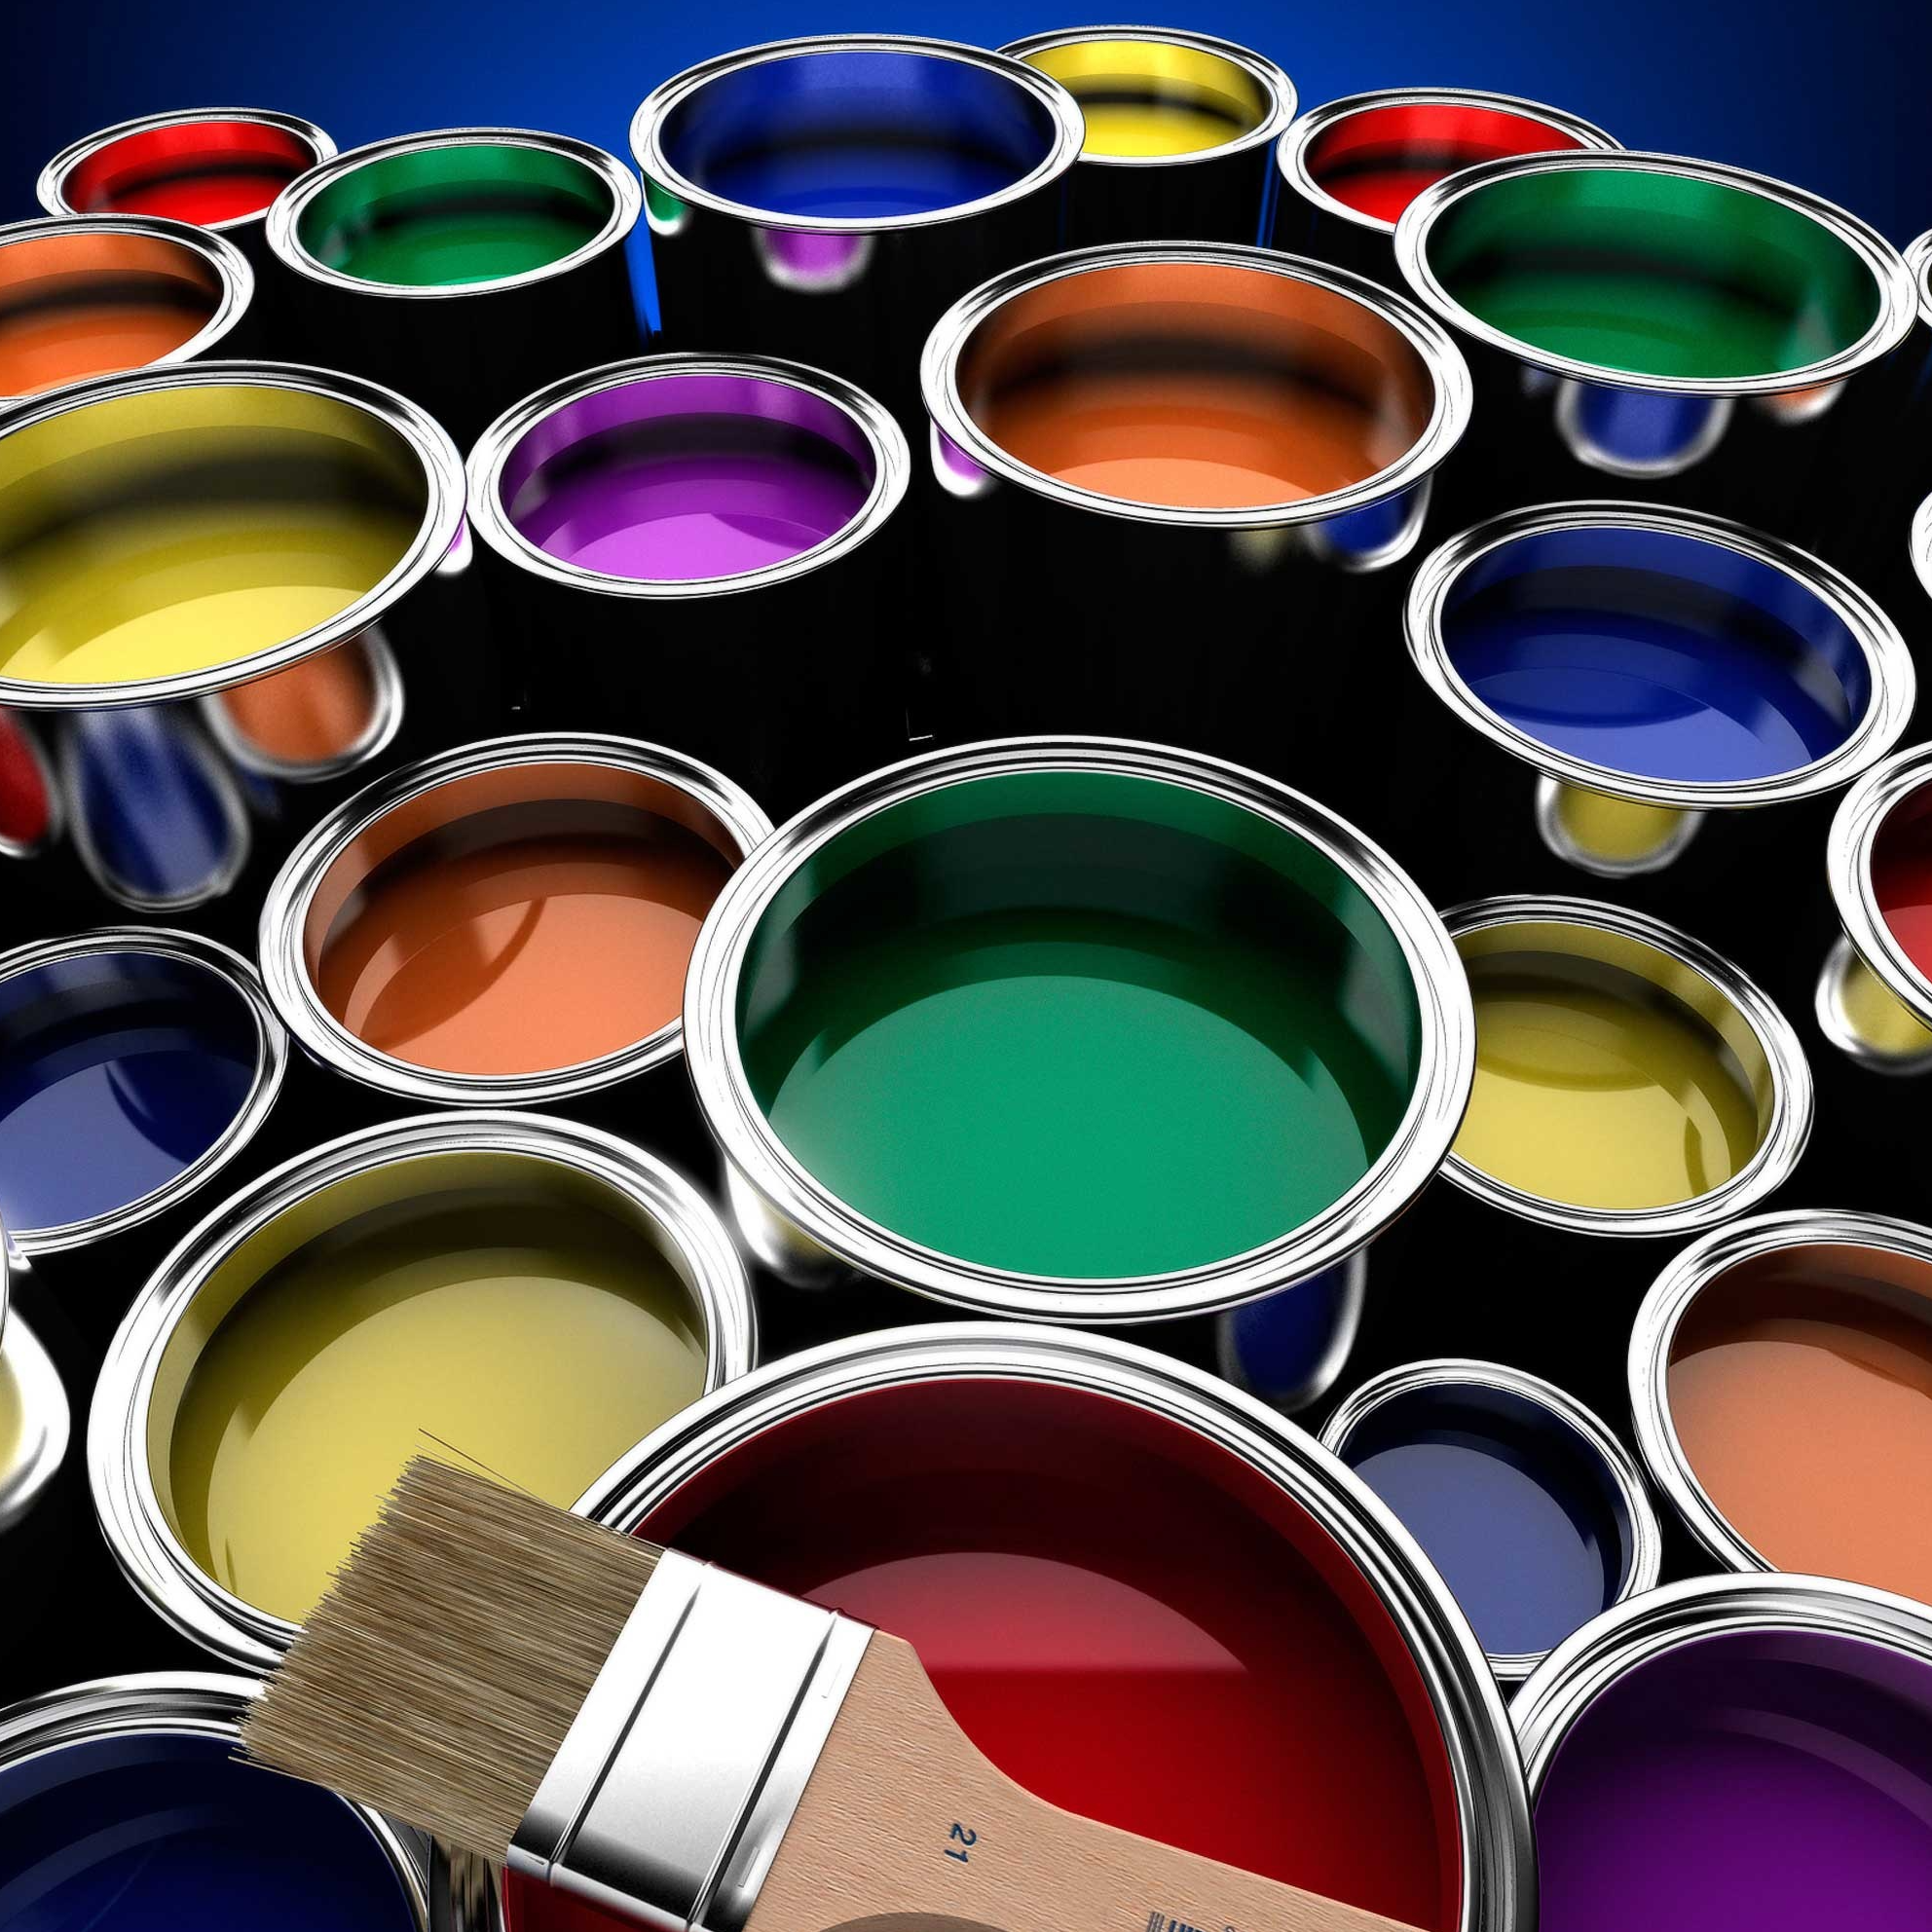 Paint color mixing and matching